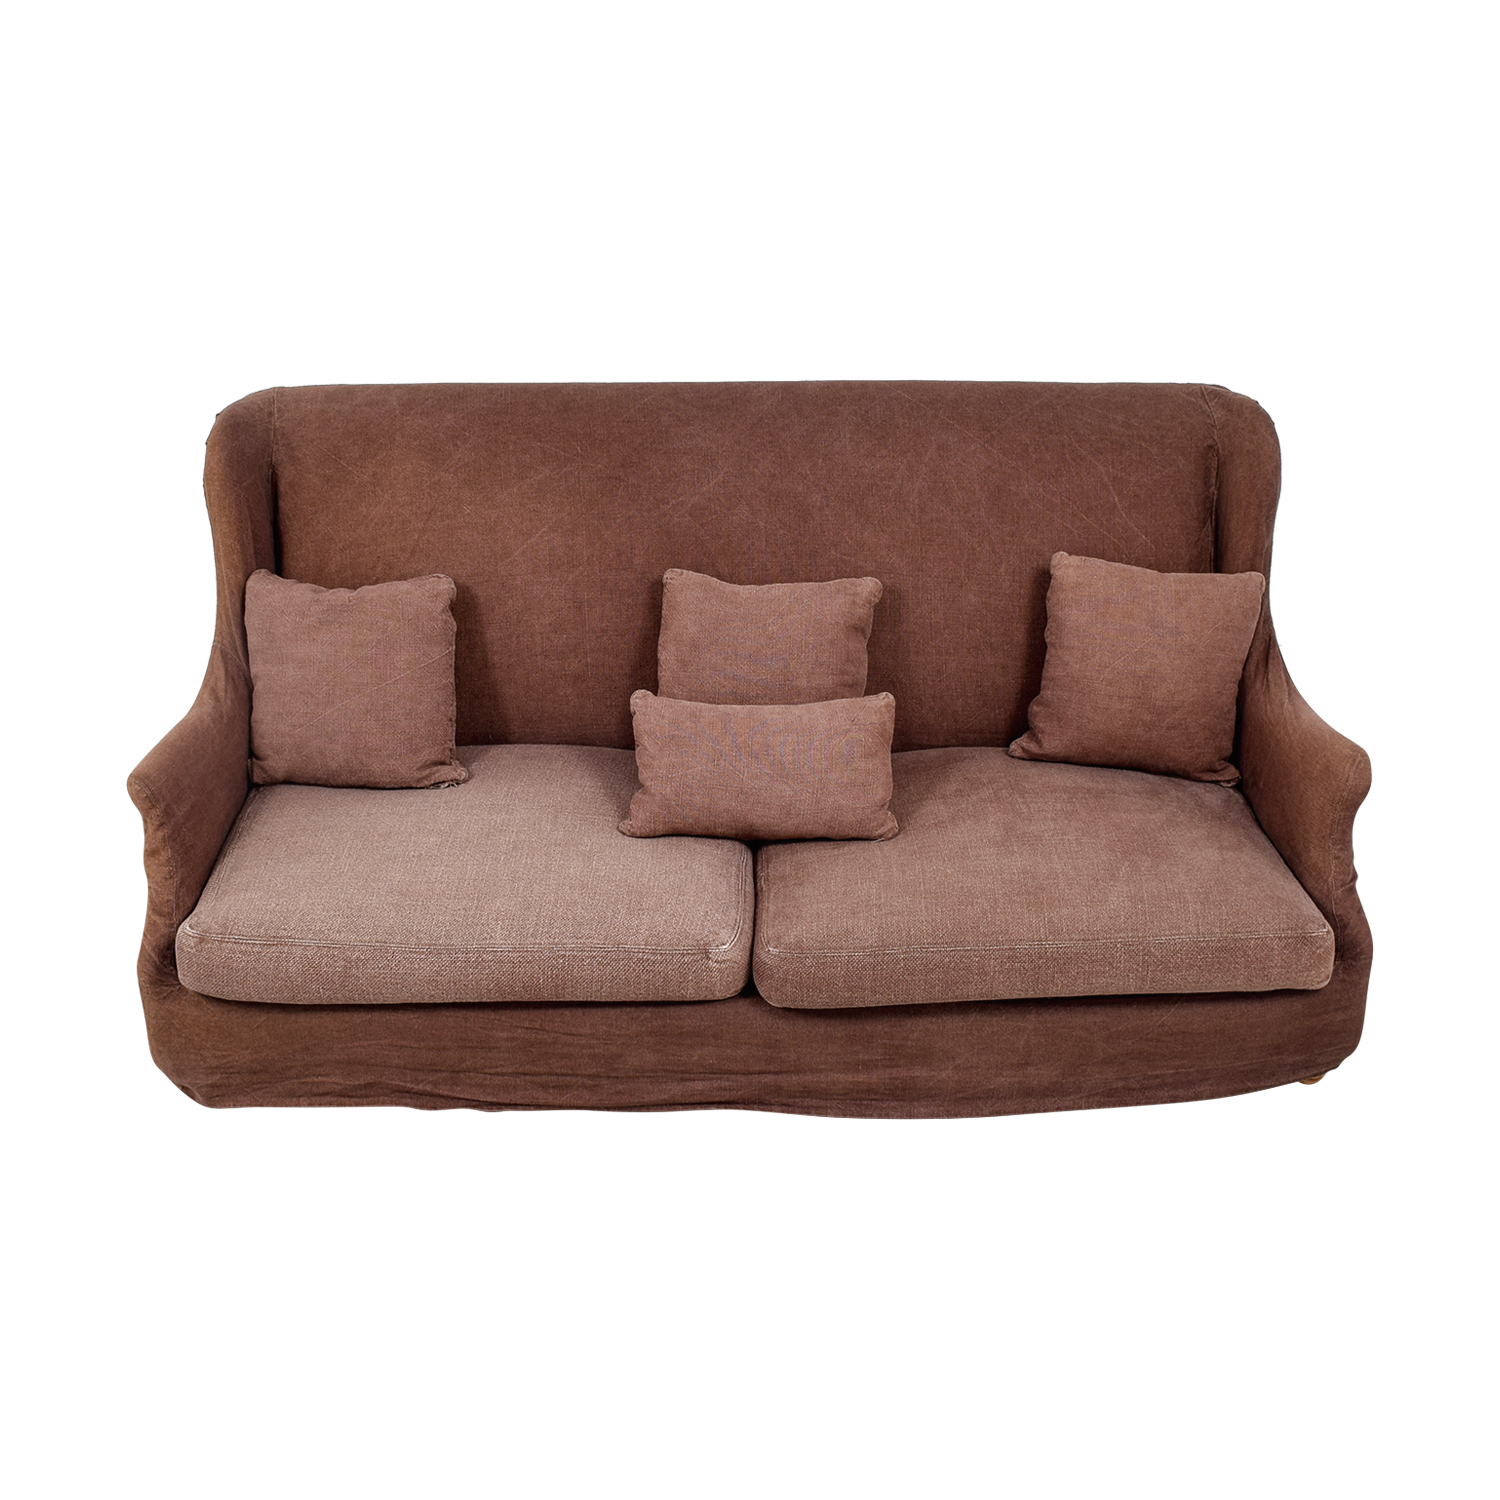 ABC Carpet & Home ABC Carpet & Home Brown Washed Linen Slipcovered Sofa Sofas